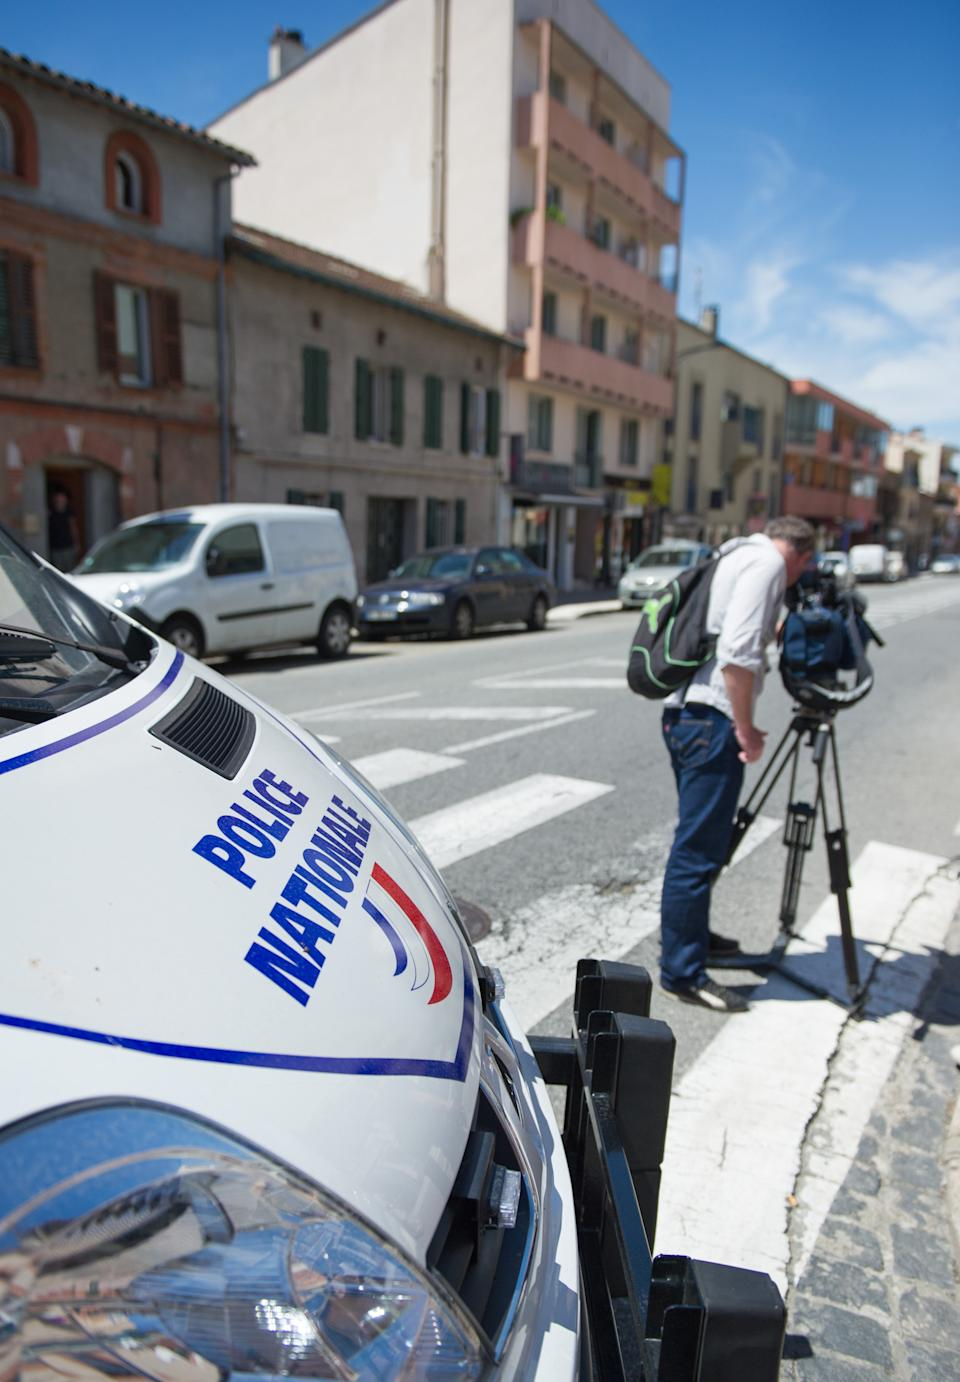 A  police van parks near a cameraman near where a man took hostages in a bank in the southern French city of Toulouse and fired a shot, police said, Wednesday, June 20, 2012. French television reported that he claimed allegiance to the al-Qaida terrorist group.(AP Photo/Bruno Martin)